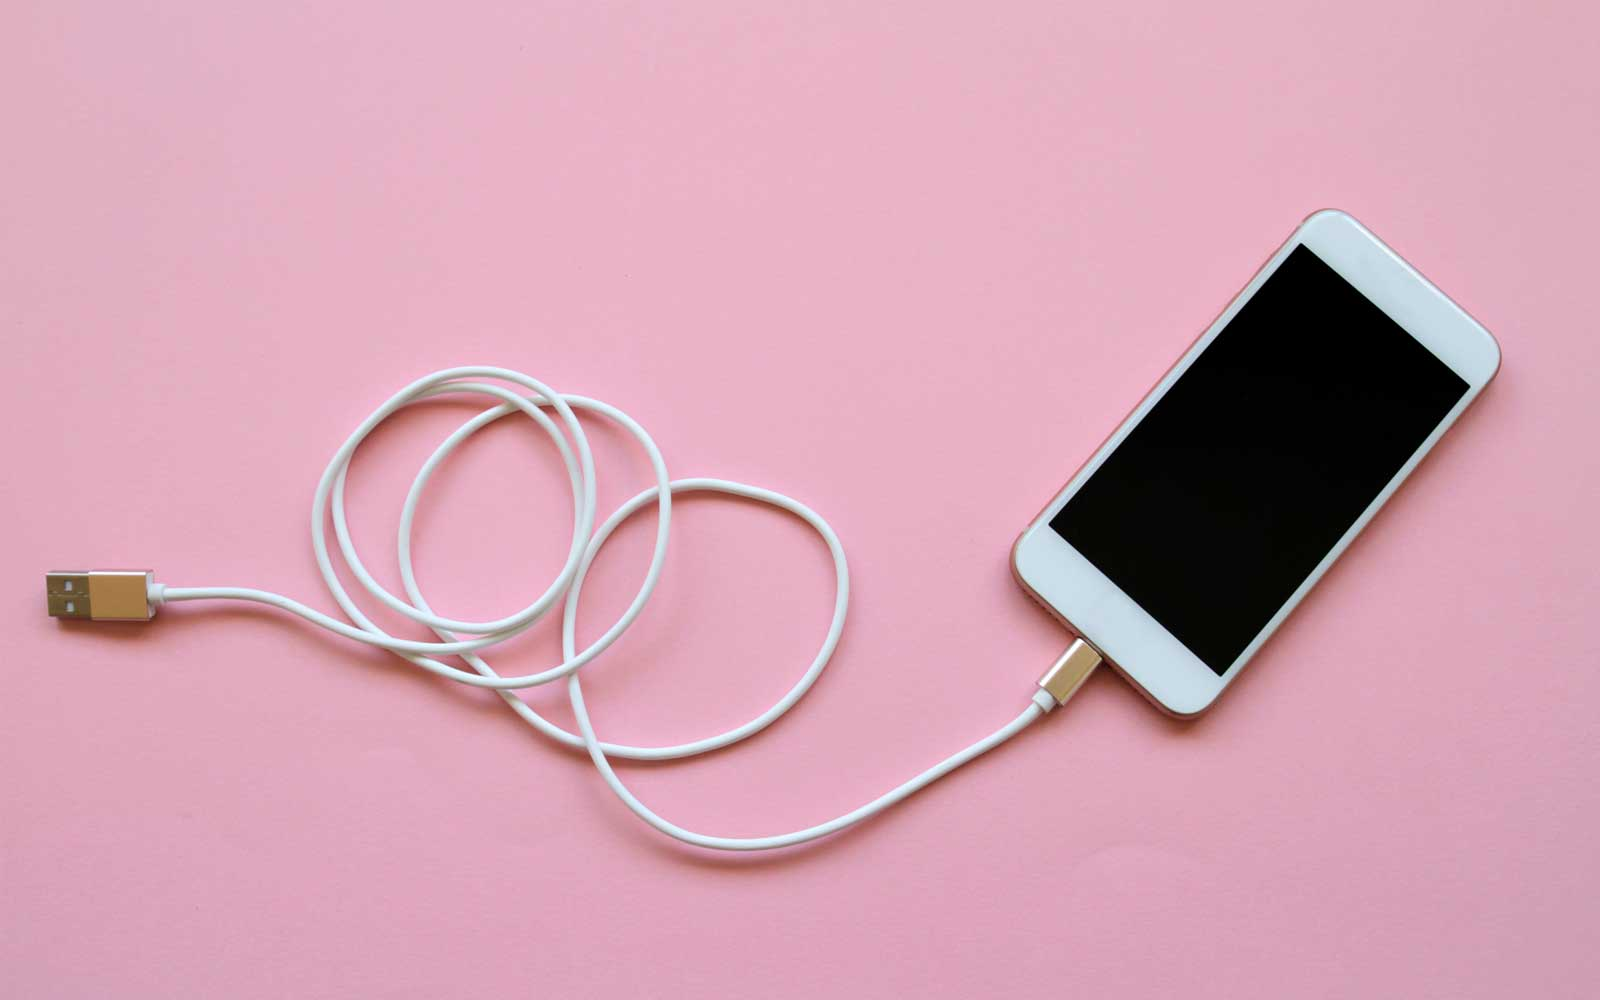 This Simple Hack Will Keep Your Phone Charger From Fraying No Matter How Many Times You Use It